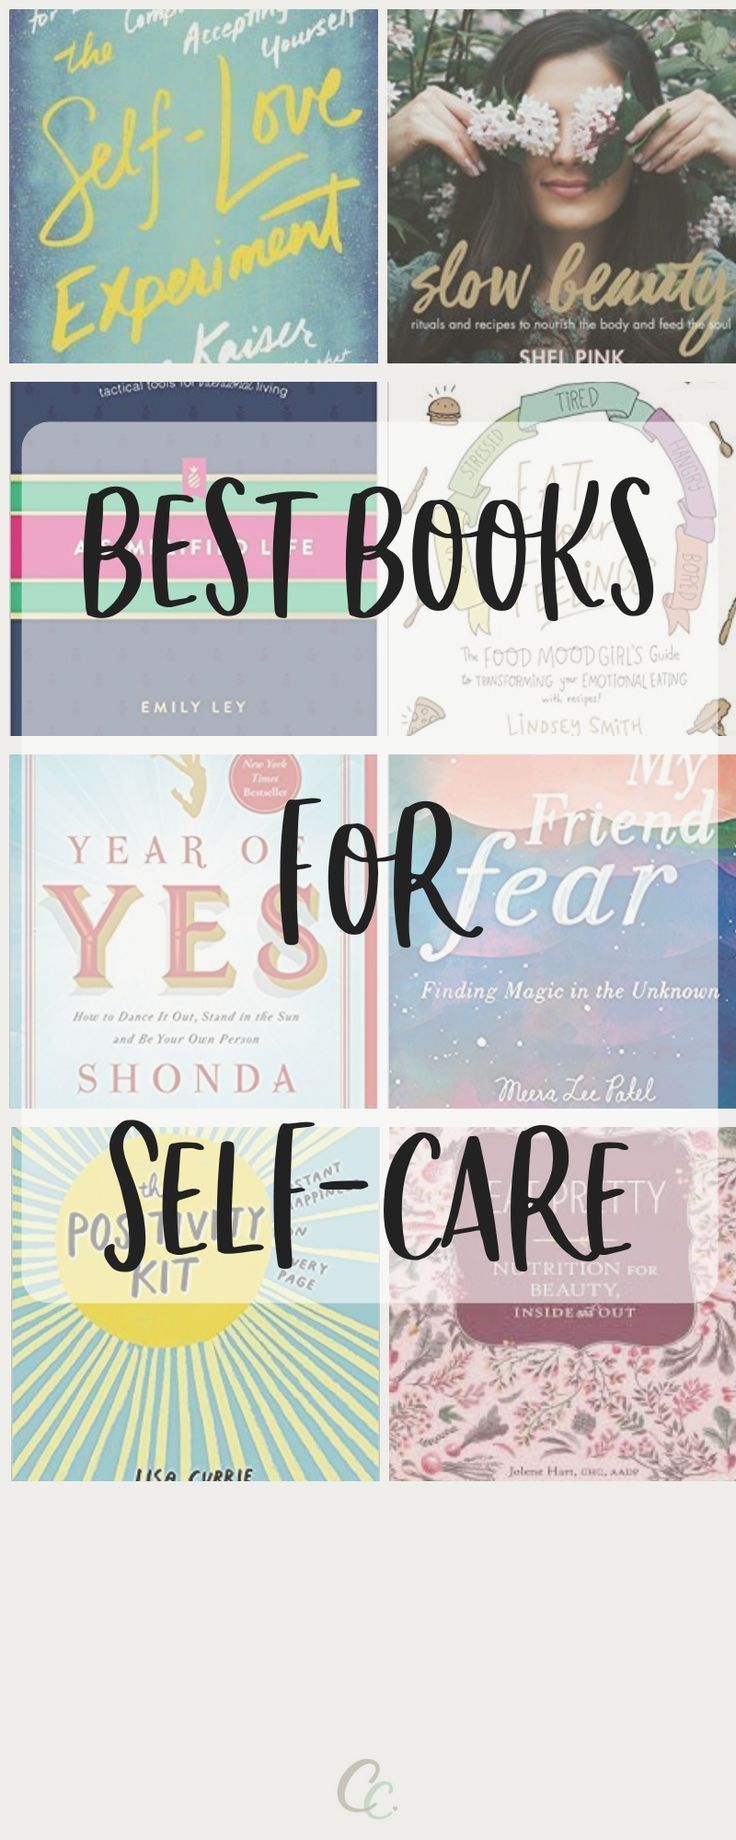 The Best Books for SelfCare is part of Best self help books, Books for self improvement, Self love books, Good books, Positive books, Self help books - Sometimes, there's no greater comfort than curling up with a book that you know is going to help you feel refreshed and reinspired  We've rounded up our favourite books that deserve to become a staple on your shelf for whenever you have a few moments to focus on you  A Simplified Life Tactical Tools for Intentional LivingEmily Ley is all about working to simplify your life so that you can intentionally focus on the things that truly matter  In this book, Emily provides simple systems and tools to help you prioritize what really matters and clear out what doesn't  The book provides tips for all areas of your life, including meal planning, home, style, finances, and more  Eat Your Feelings The Food Mood Girl's Guide to Transforming Your Emotional EatingEat Your Feelings is all about listening to your body and nourishing your being  Lindsey embraces the things we most crave when we're stressed  salty, sweet, crunchy, cheesy, and more  and remakes them so that contain moodboosting ingredients that will help you feel better even long after you eat  What we love most is the underlying tone that focuses on being kind to yourself  Slow Beauty Rituals and Recipes to Nourish the Body and Feed the SoulIf mindfulness, bubble baths, and face masks are your version of selfcare, this book is for you! The book is filled with ideas for breathing exercises, meditations, and how to create your own mantra  There are also plenty of recipes for homemade scrubs and body oils, as well as nourishing teas, soups, juices, and smoothies  Now is Your Chance A 30Day Guide to Living Your Happiest Life Using Positive PsychologyNiyc Pidgeon is a Positive Psychologist who is sharing a 30day guide to help women embrace a happier lifestyle  The book provides coaching and ideas in a voice that is authentic and inspiring  My Friend Fear Finding Magic in 